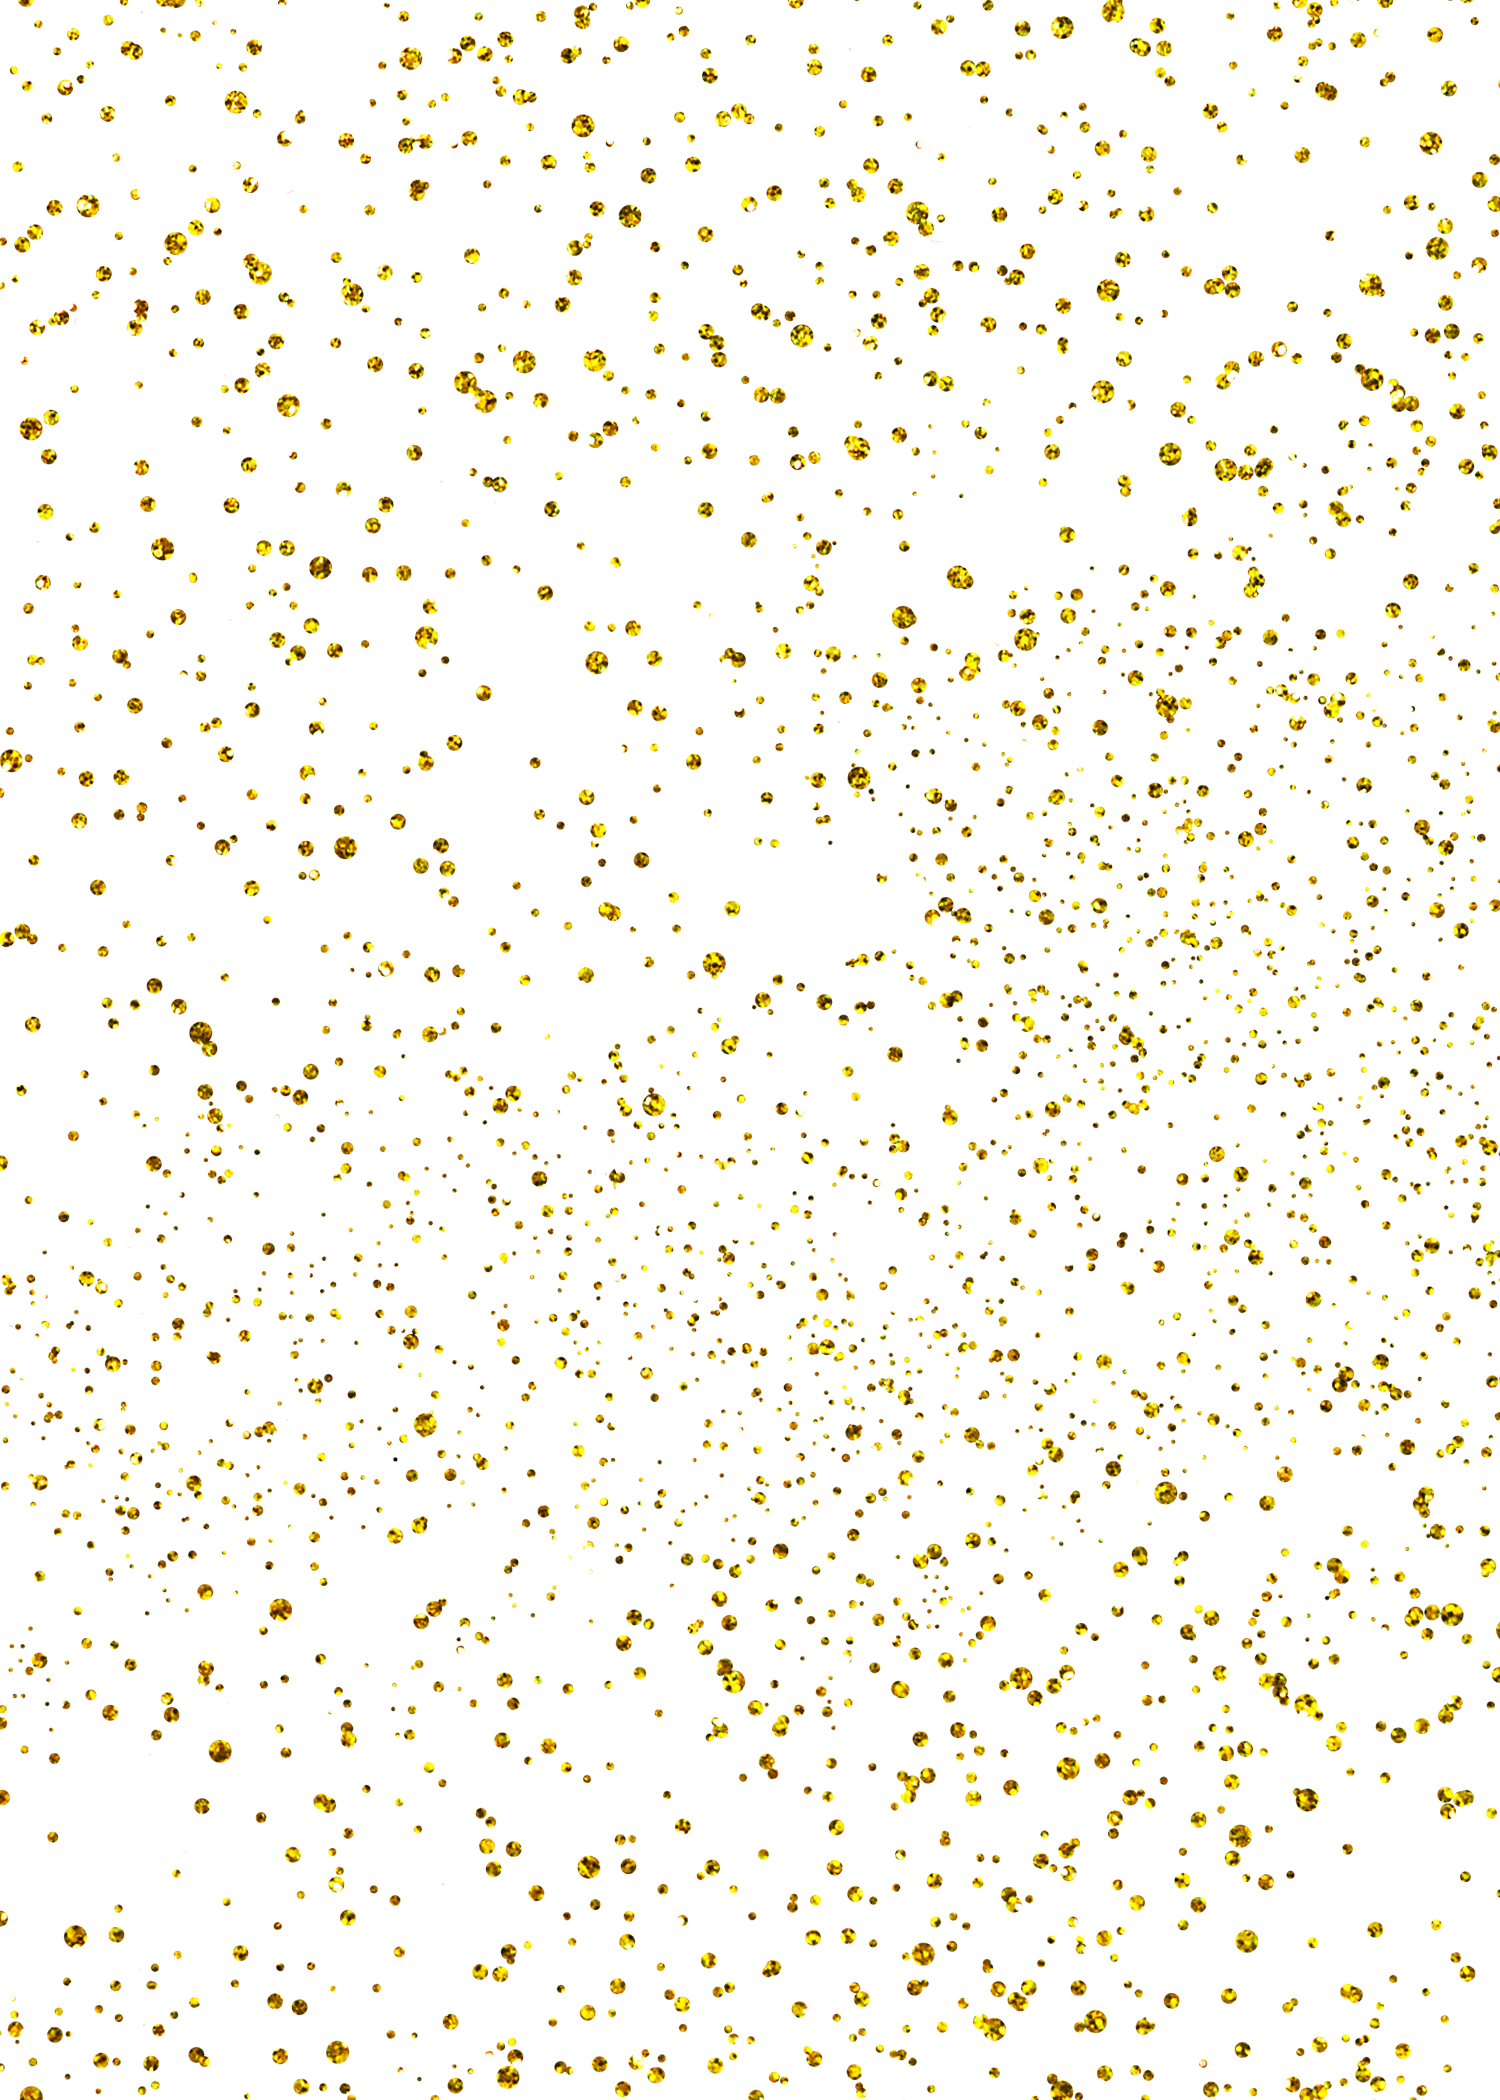 gold confetti background transparent hq free download honeycomb clip art for shower honeycomb clip art for shower